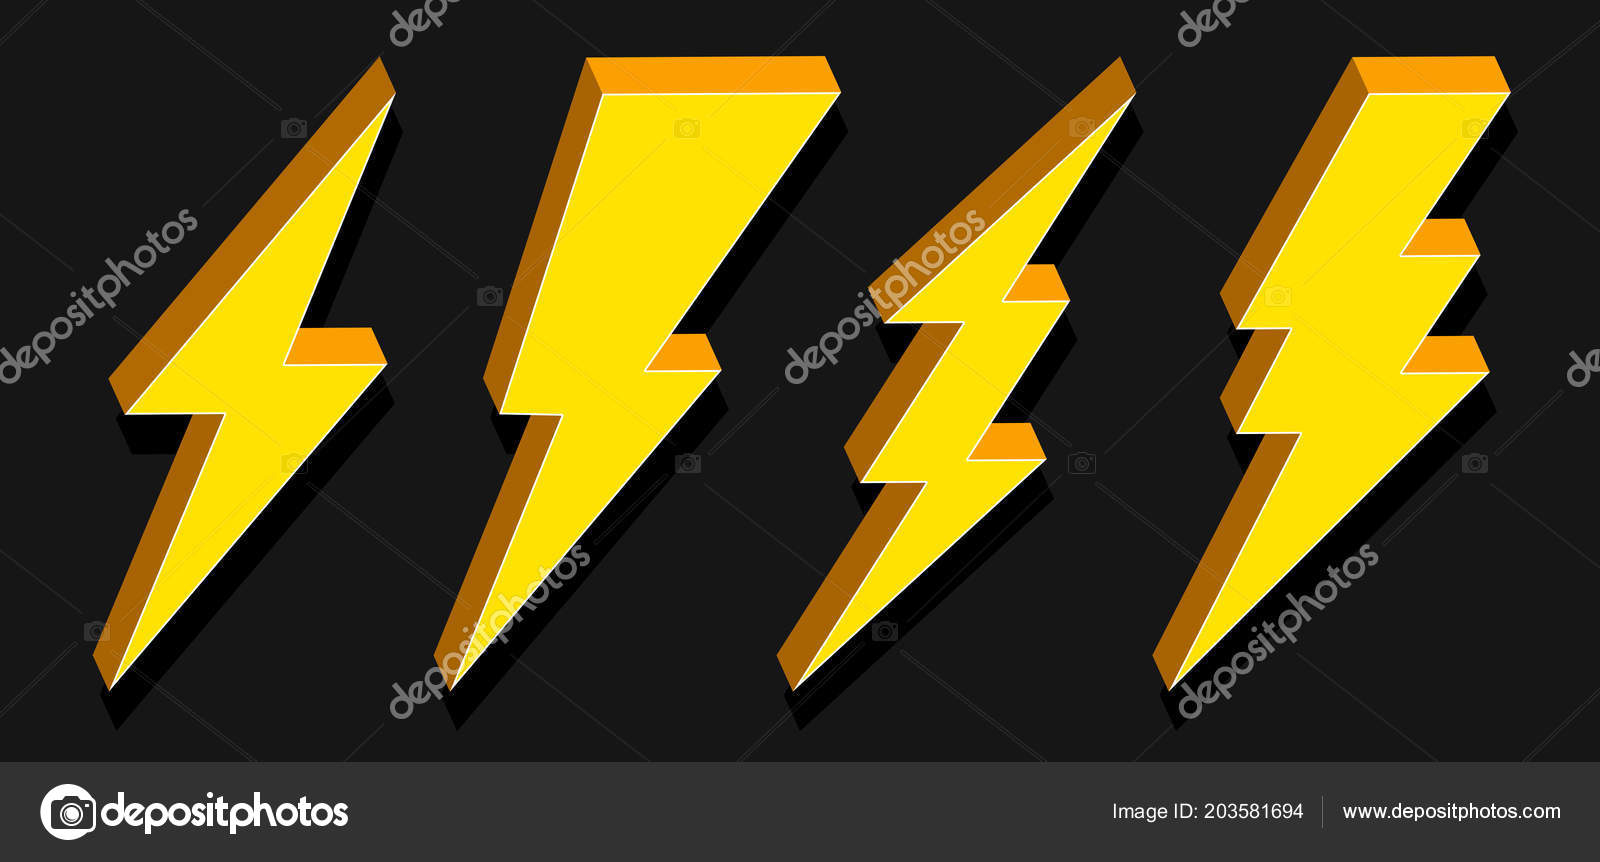 Creative vector illustration of thunder and bolt lighting flash